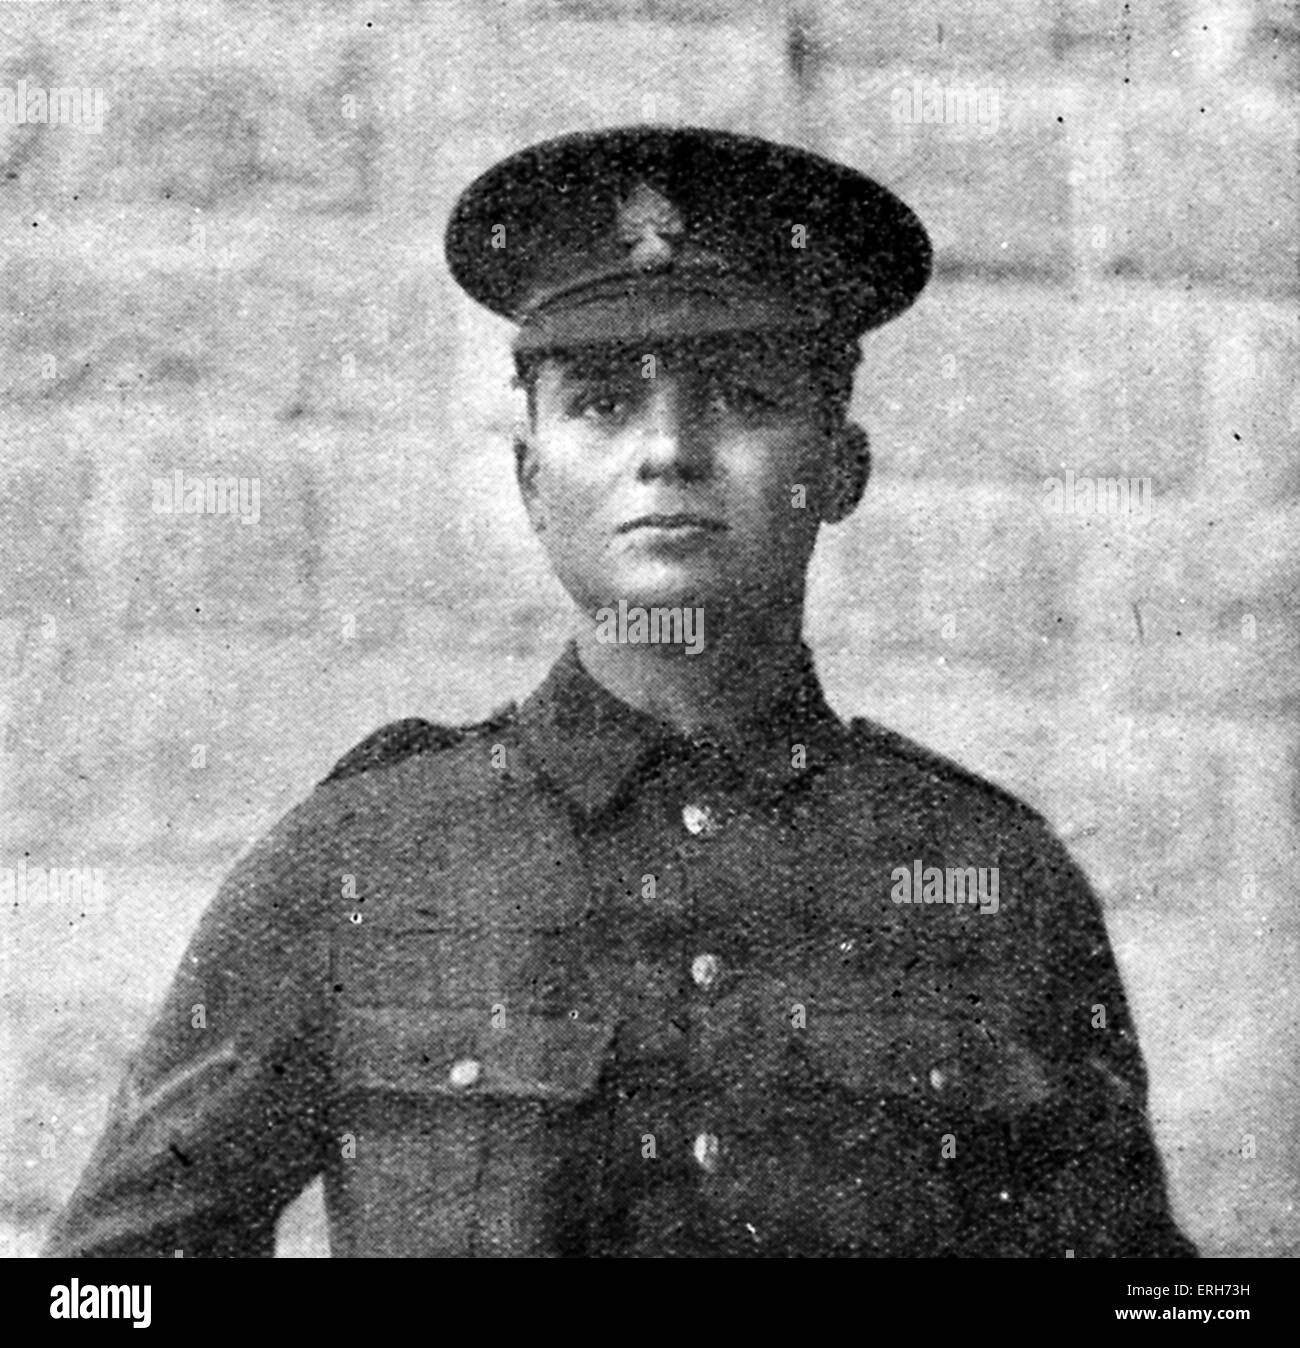 Leslie Coulson - War Poet. English journalist and soldier during World War I. 1889 – 8 October 1916. - Stock Image